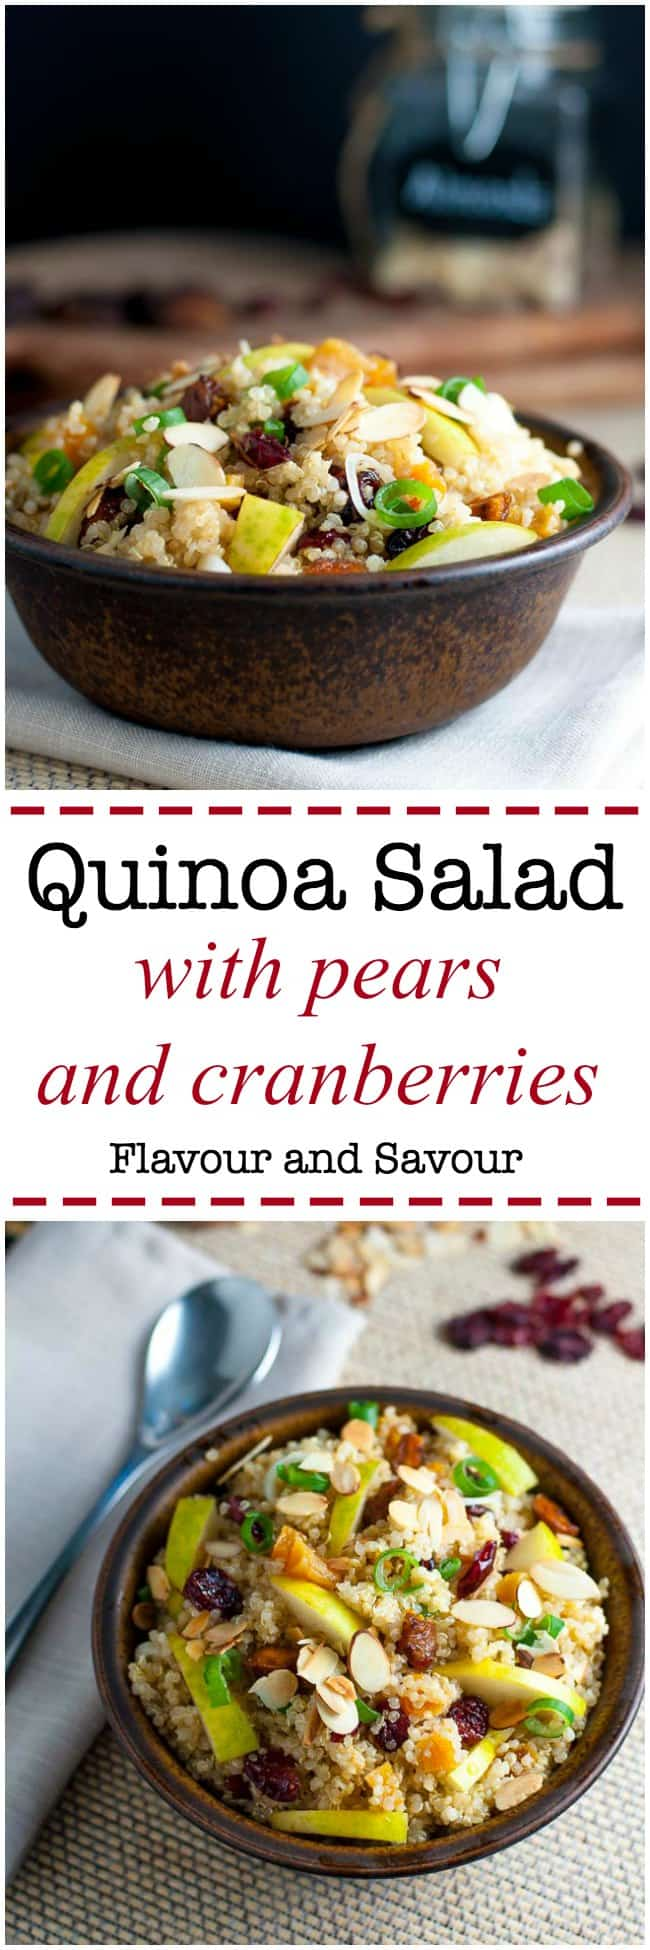 Nourishing Quinoa Salad with Cranberries and Pears. Make this gluten-free quinoa salad with cranberries and pears for a healthy lunch or a side dish. Perfect for a potluck!